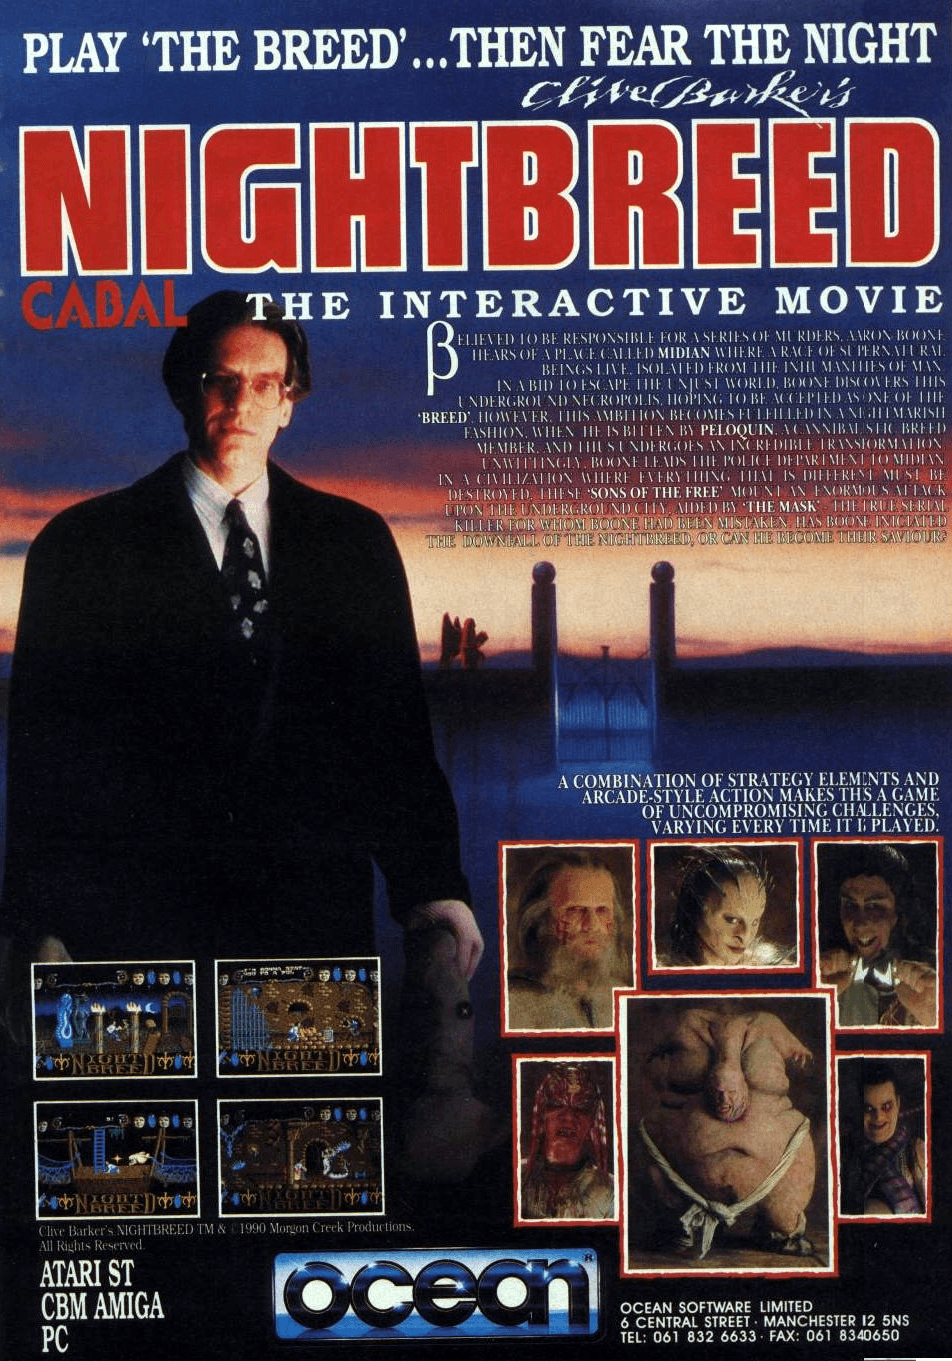 Image For Post   Clive Barker's Nightbreed: The Interactive Movie is a 1990 arcade adventure video game developed by Impact Software and published by Ocean Software on Atari ST and DOS. It is based on Clive Barker's movie Nightbreed, which in turn is based of Barker's novella Cabal. It was originally supposed to be part of a trilogy, alongside Clive Barker's Nightbreed: The Action Game - https://imgchest.com/p/b9249w8ynk8 - and an ultimately-unreleased RPG.